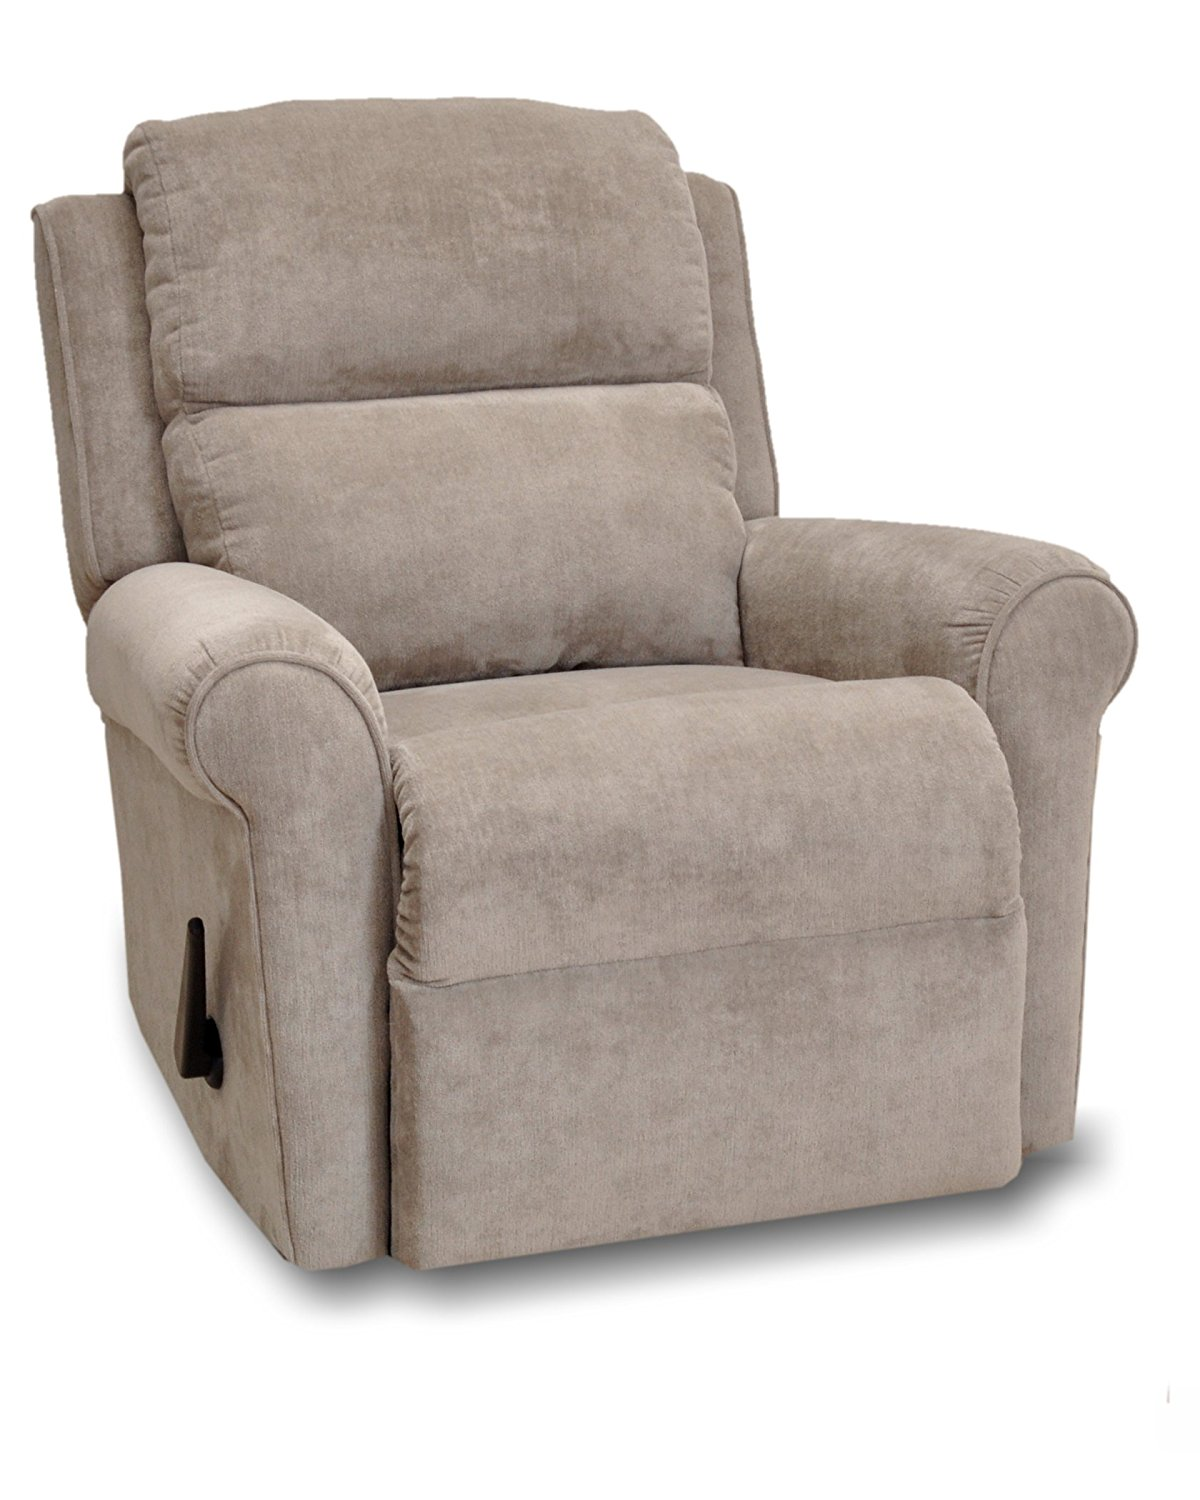 small recliner for sleeping